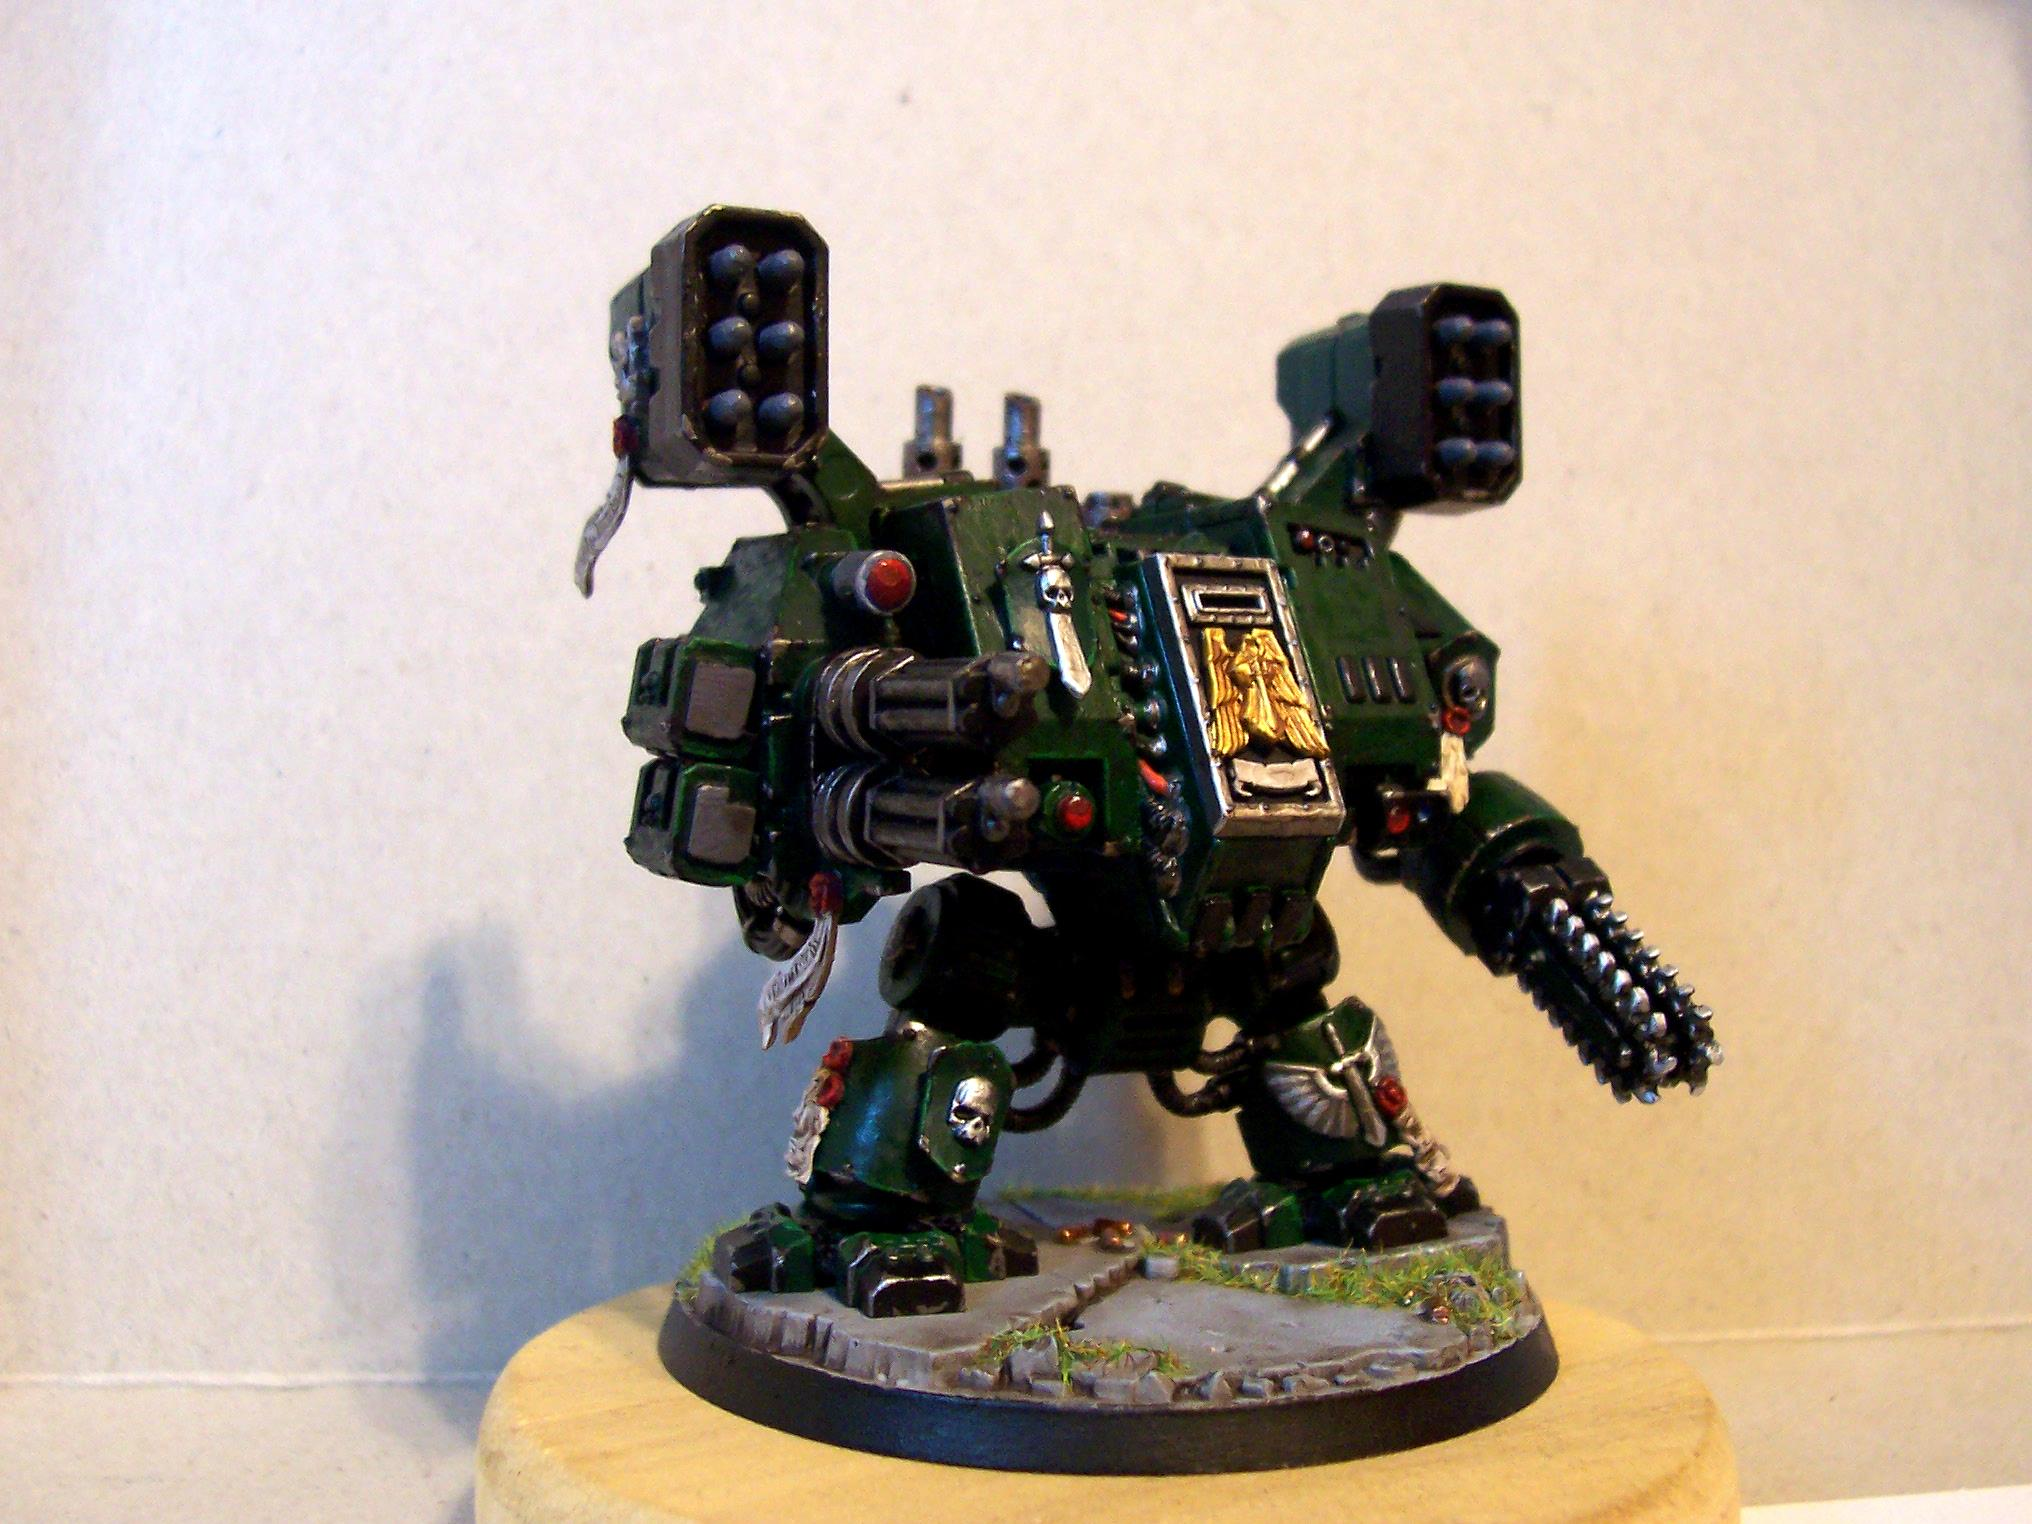 Assault Cannon, Chainfist, Conversion, Dark Angels, Dreadnought, Missile Launcher, Space Marines